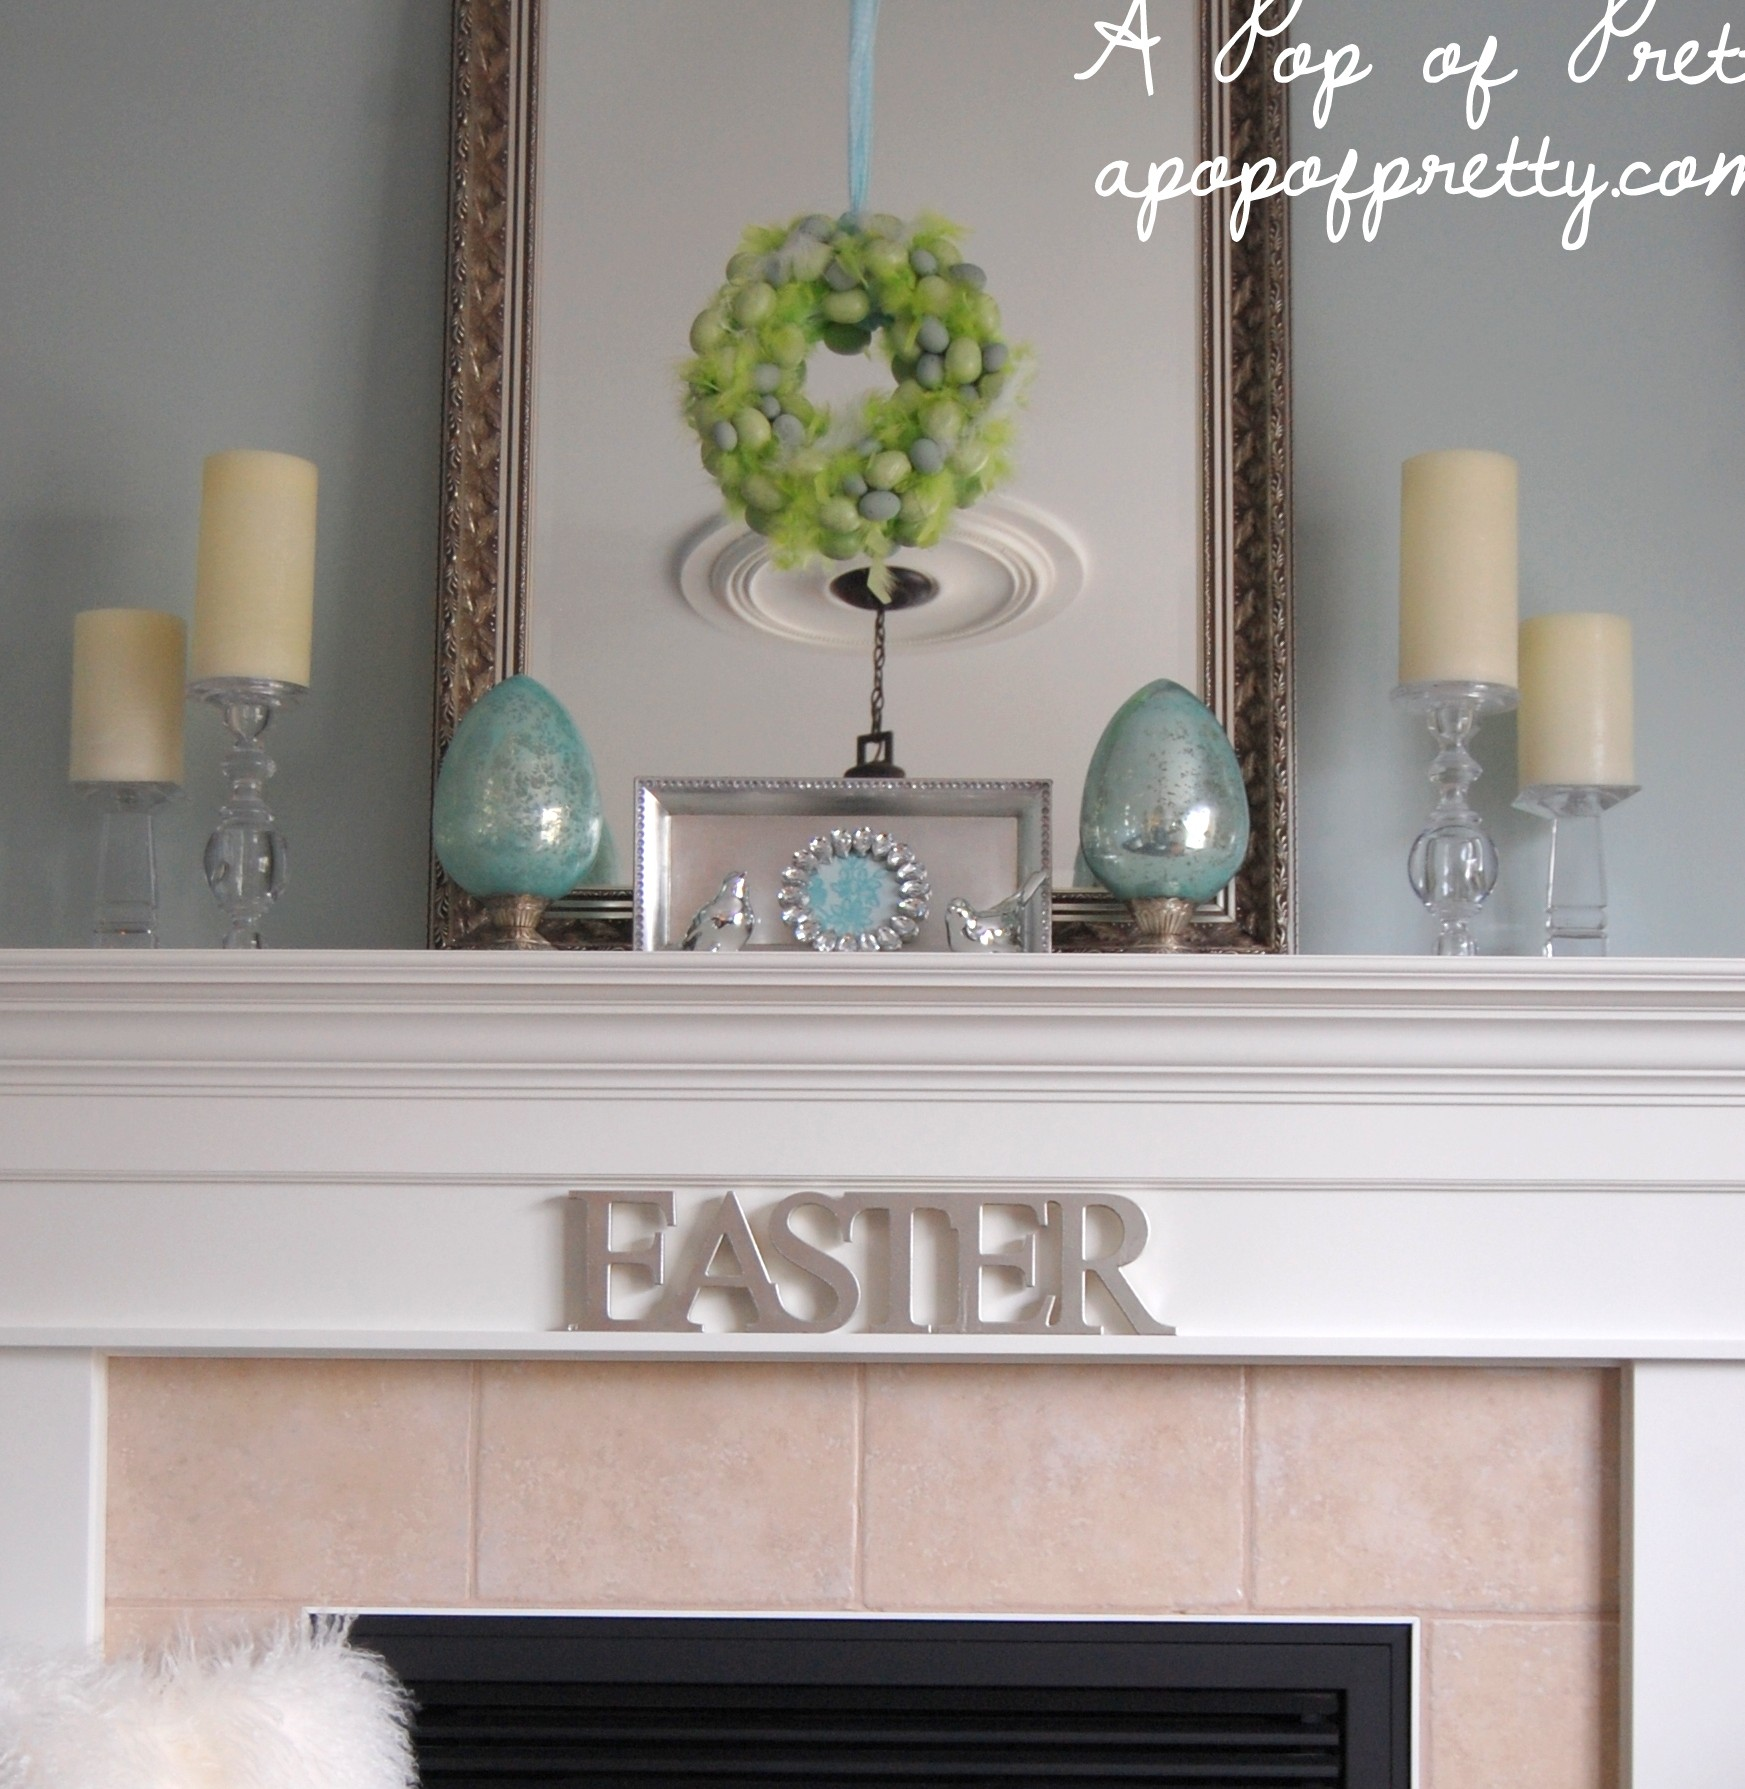 Canada Home Decor Ideas: Easter Decorating Ideas: Decorate A Simple Easter Mantel